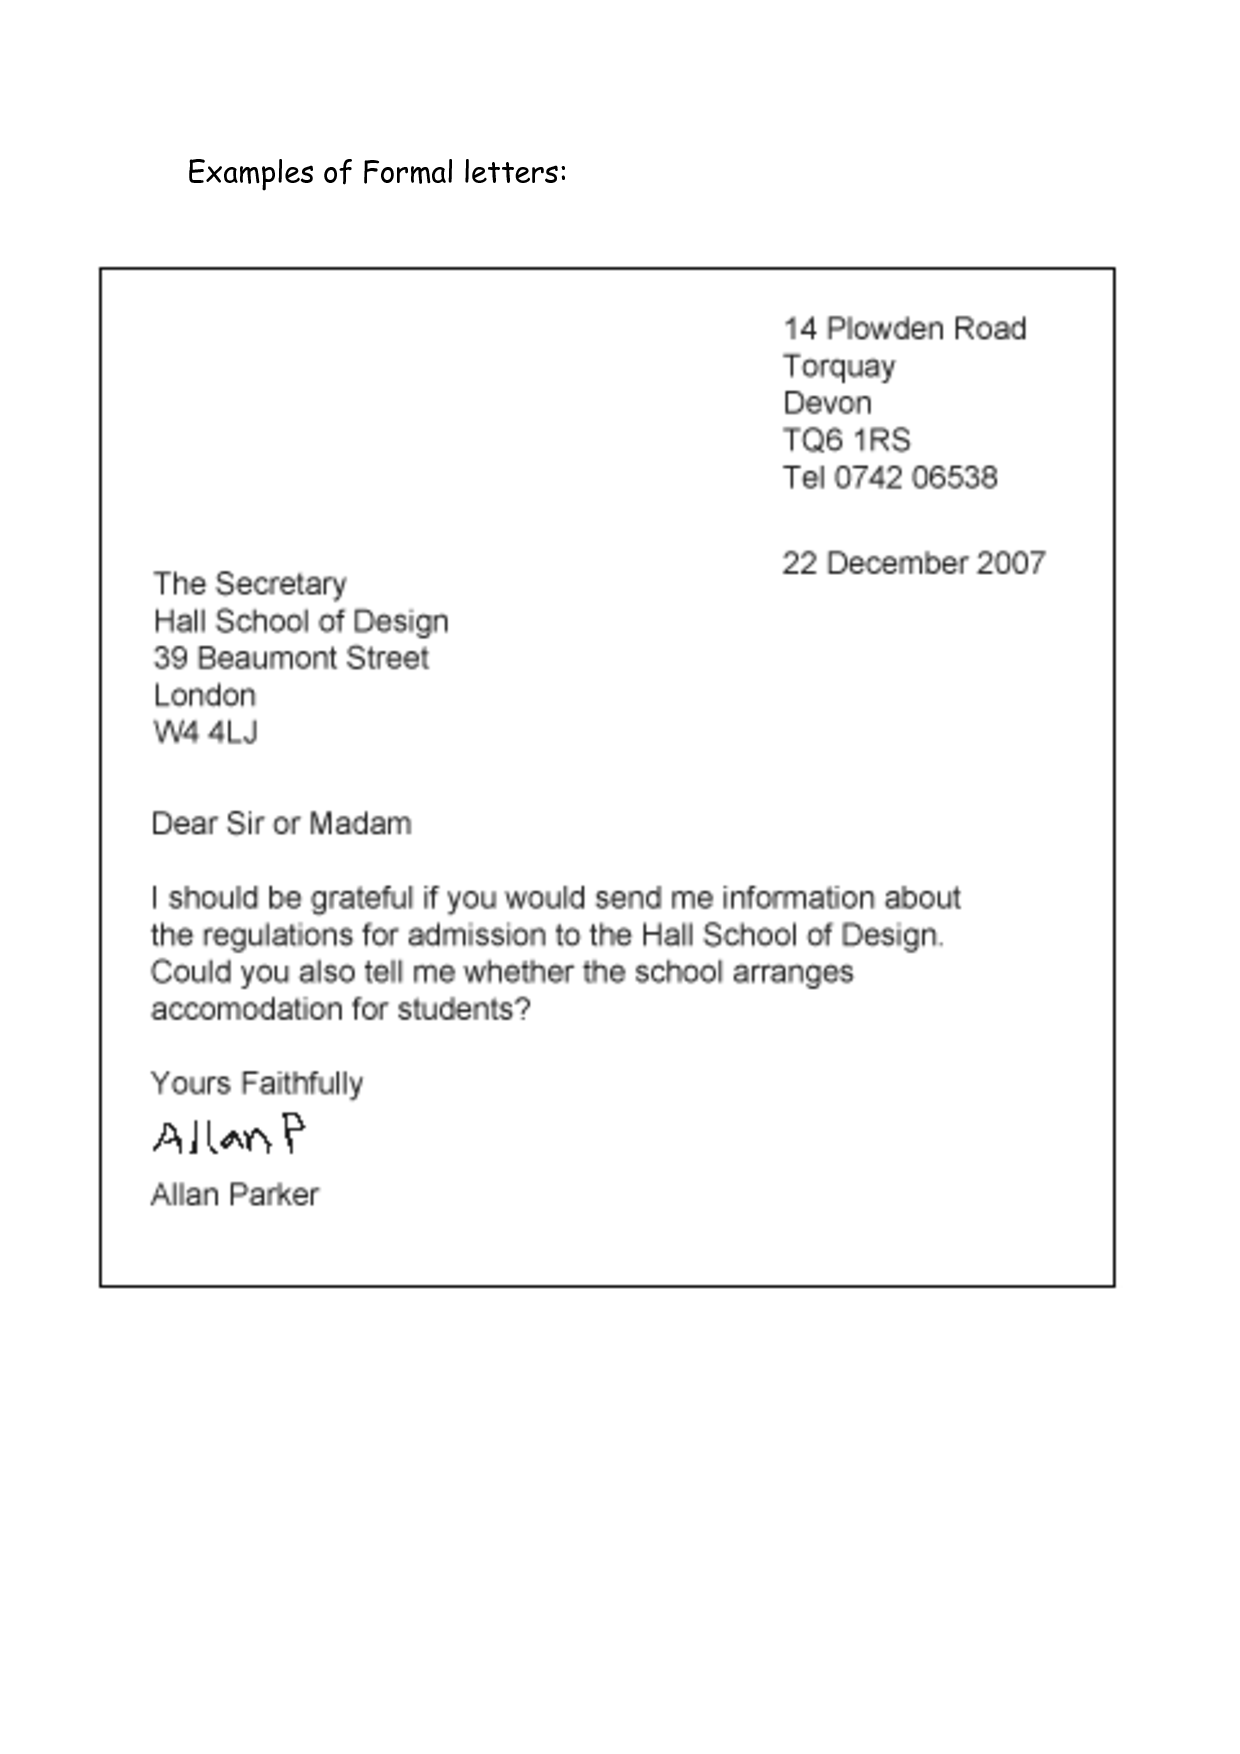 Formal letter example | Business letter format ...